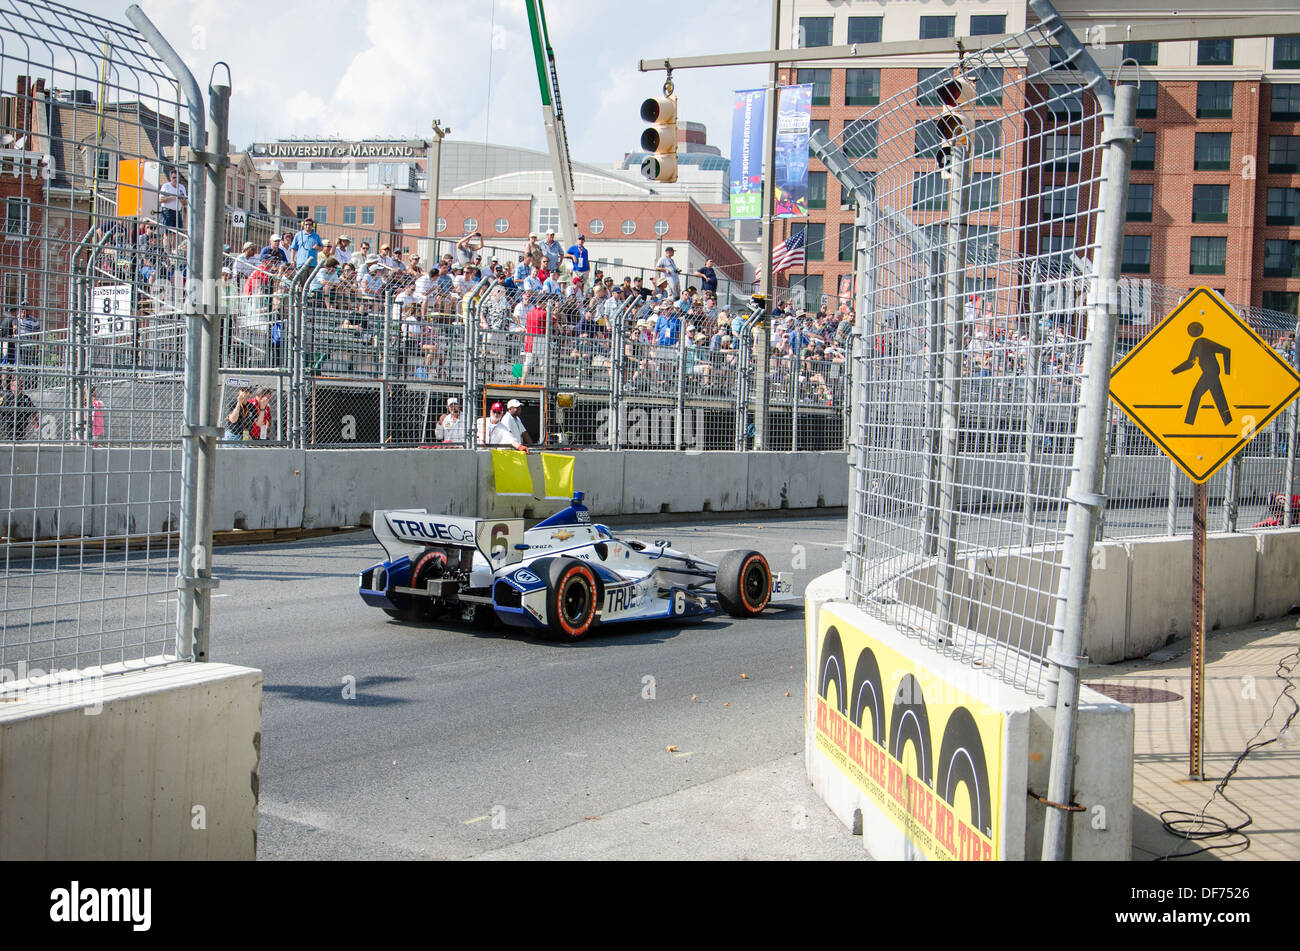 Track side at the Baltimore Grand Prix - Stock Image